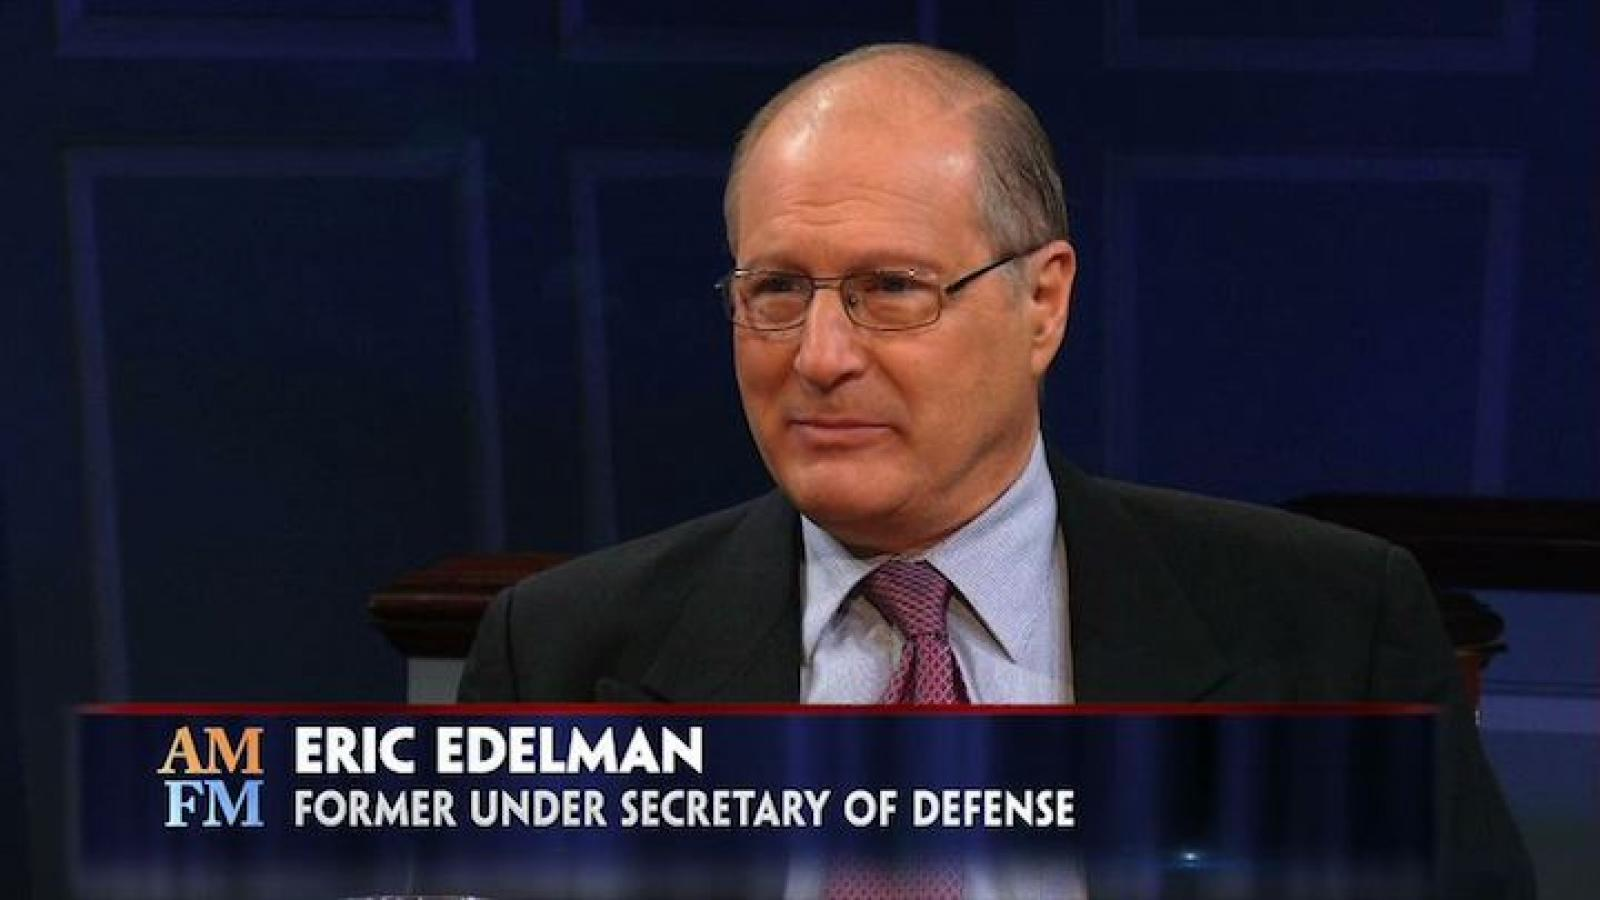 Eric S. Edelman on American Forum